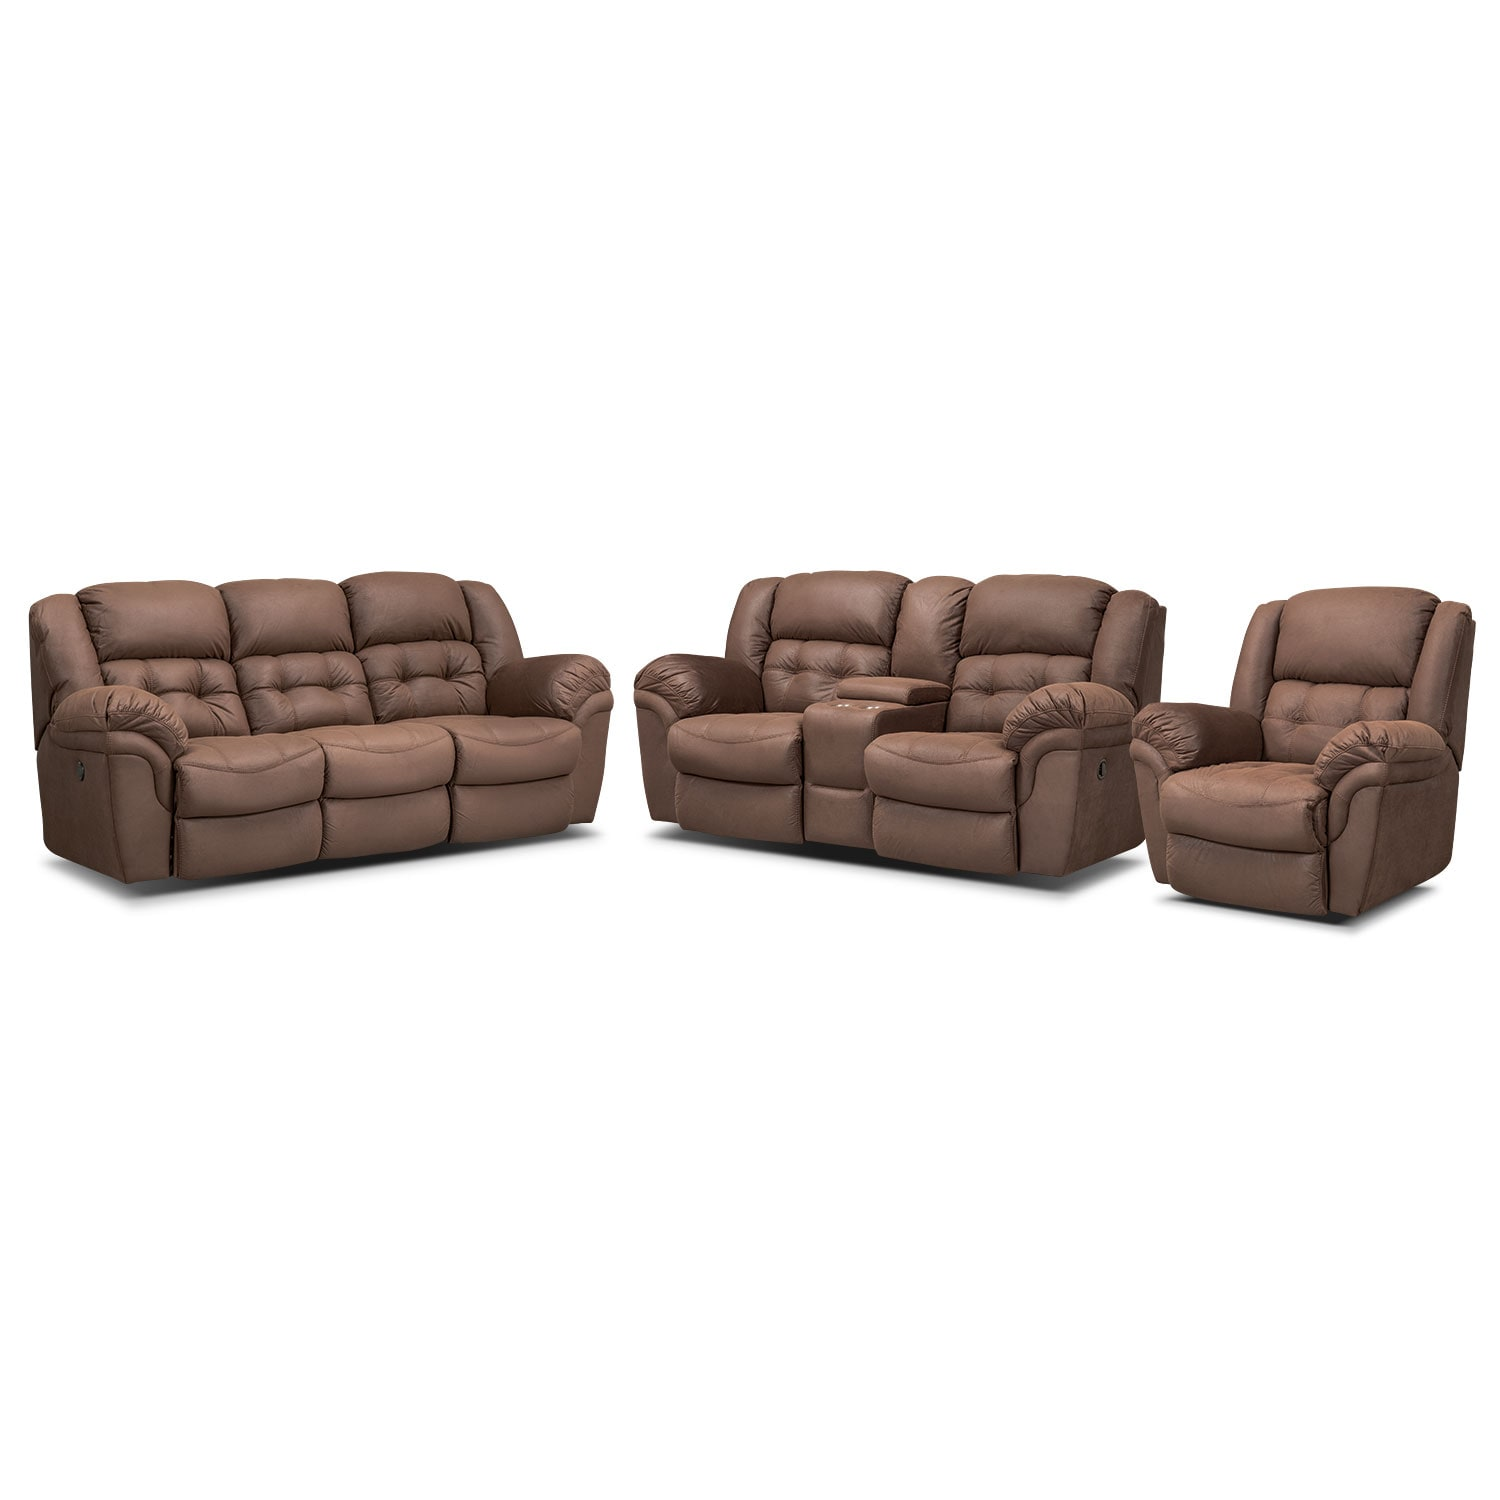 Living Room Furniture - Lancer Power Reclining Sofa, Manual Reclining Loveseat and Glider Recliner Set - Chocolate